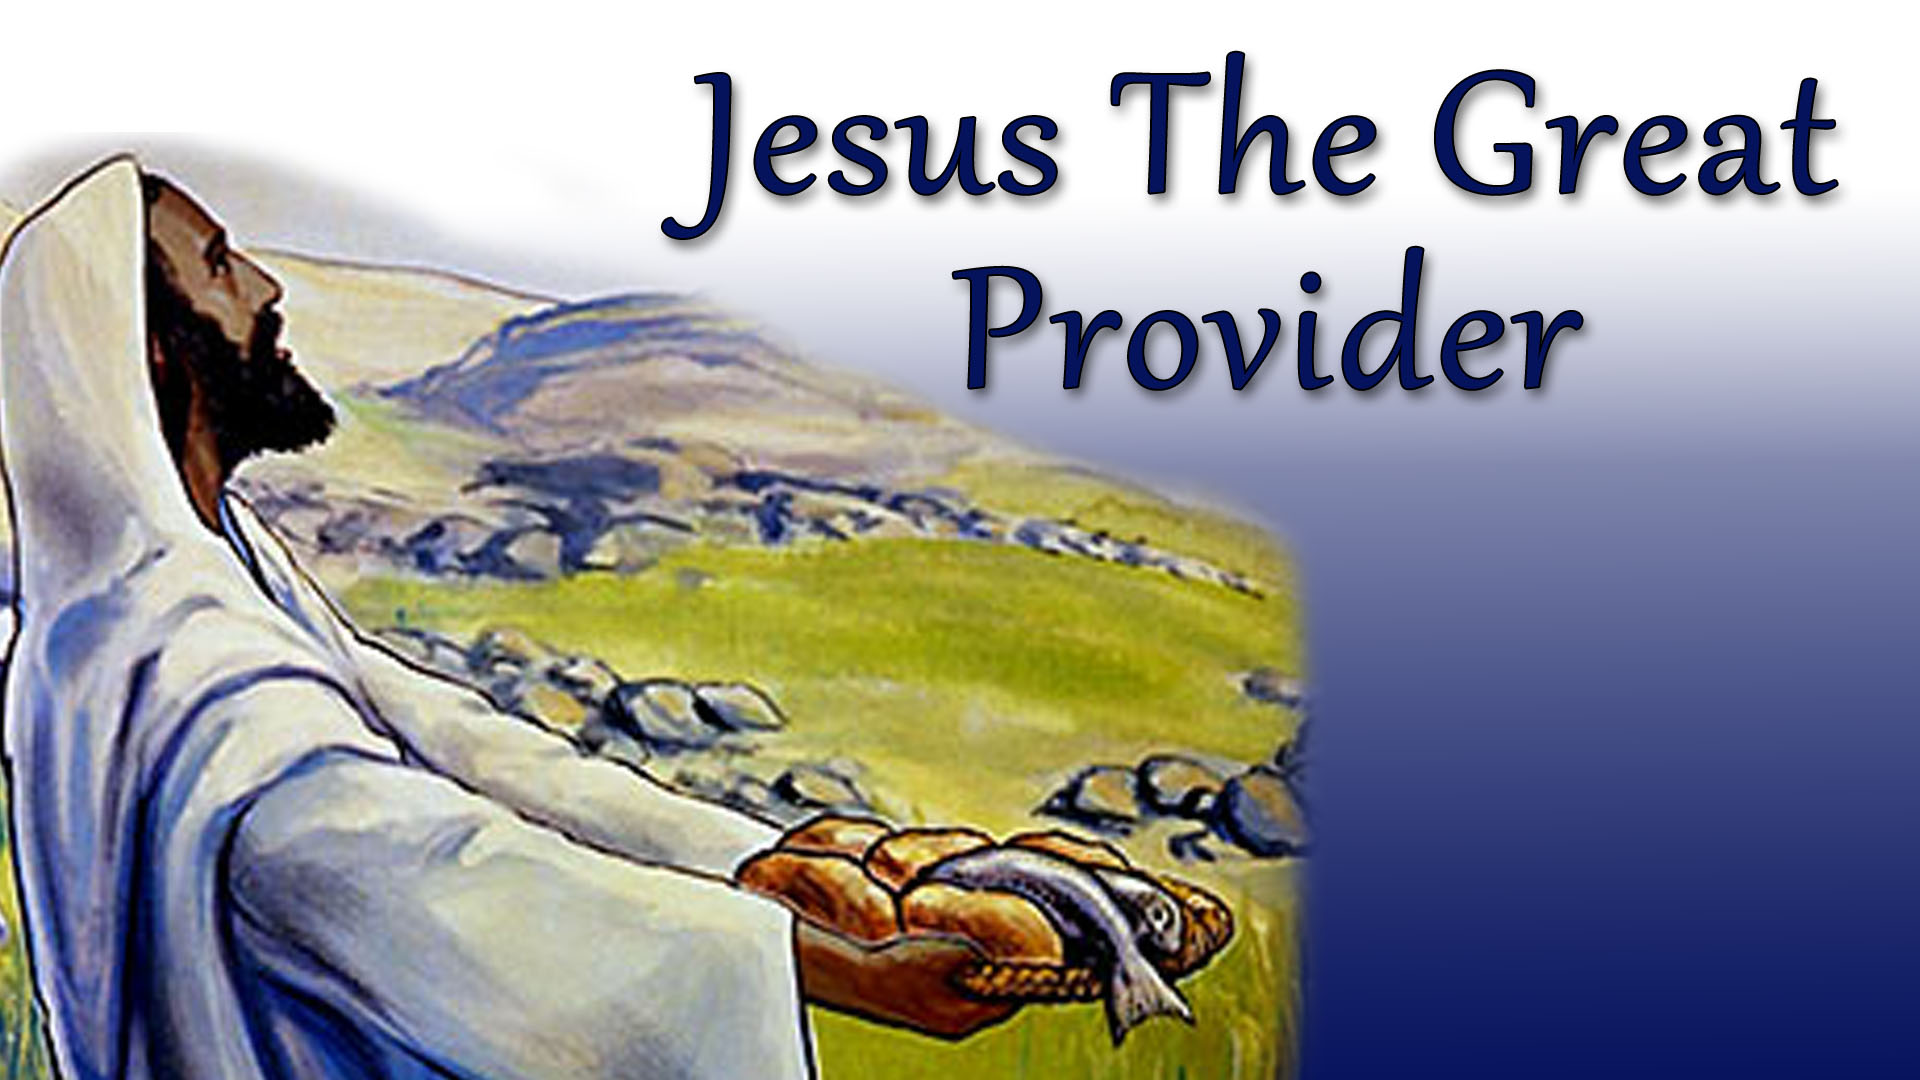 JESUS THE GREAT PROVIDER (7-29-18)